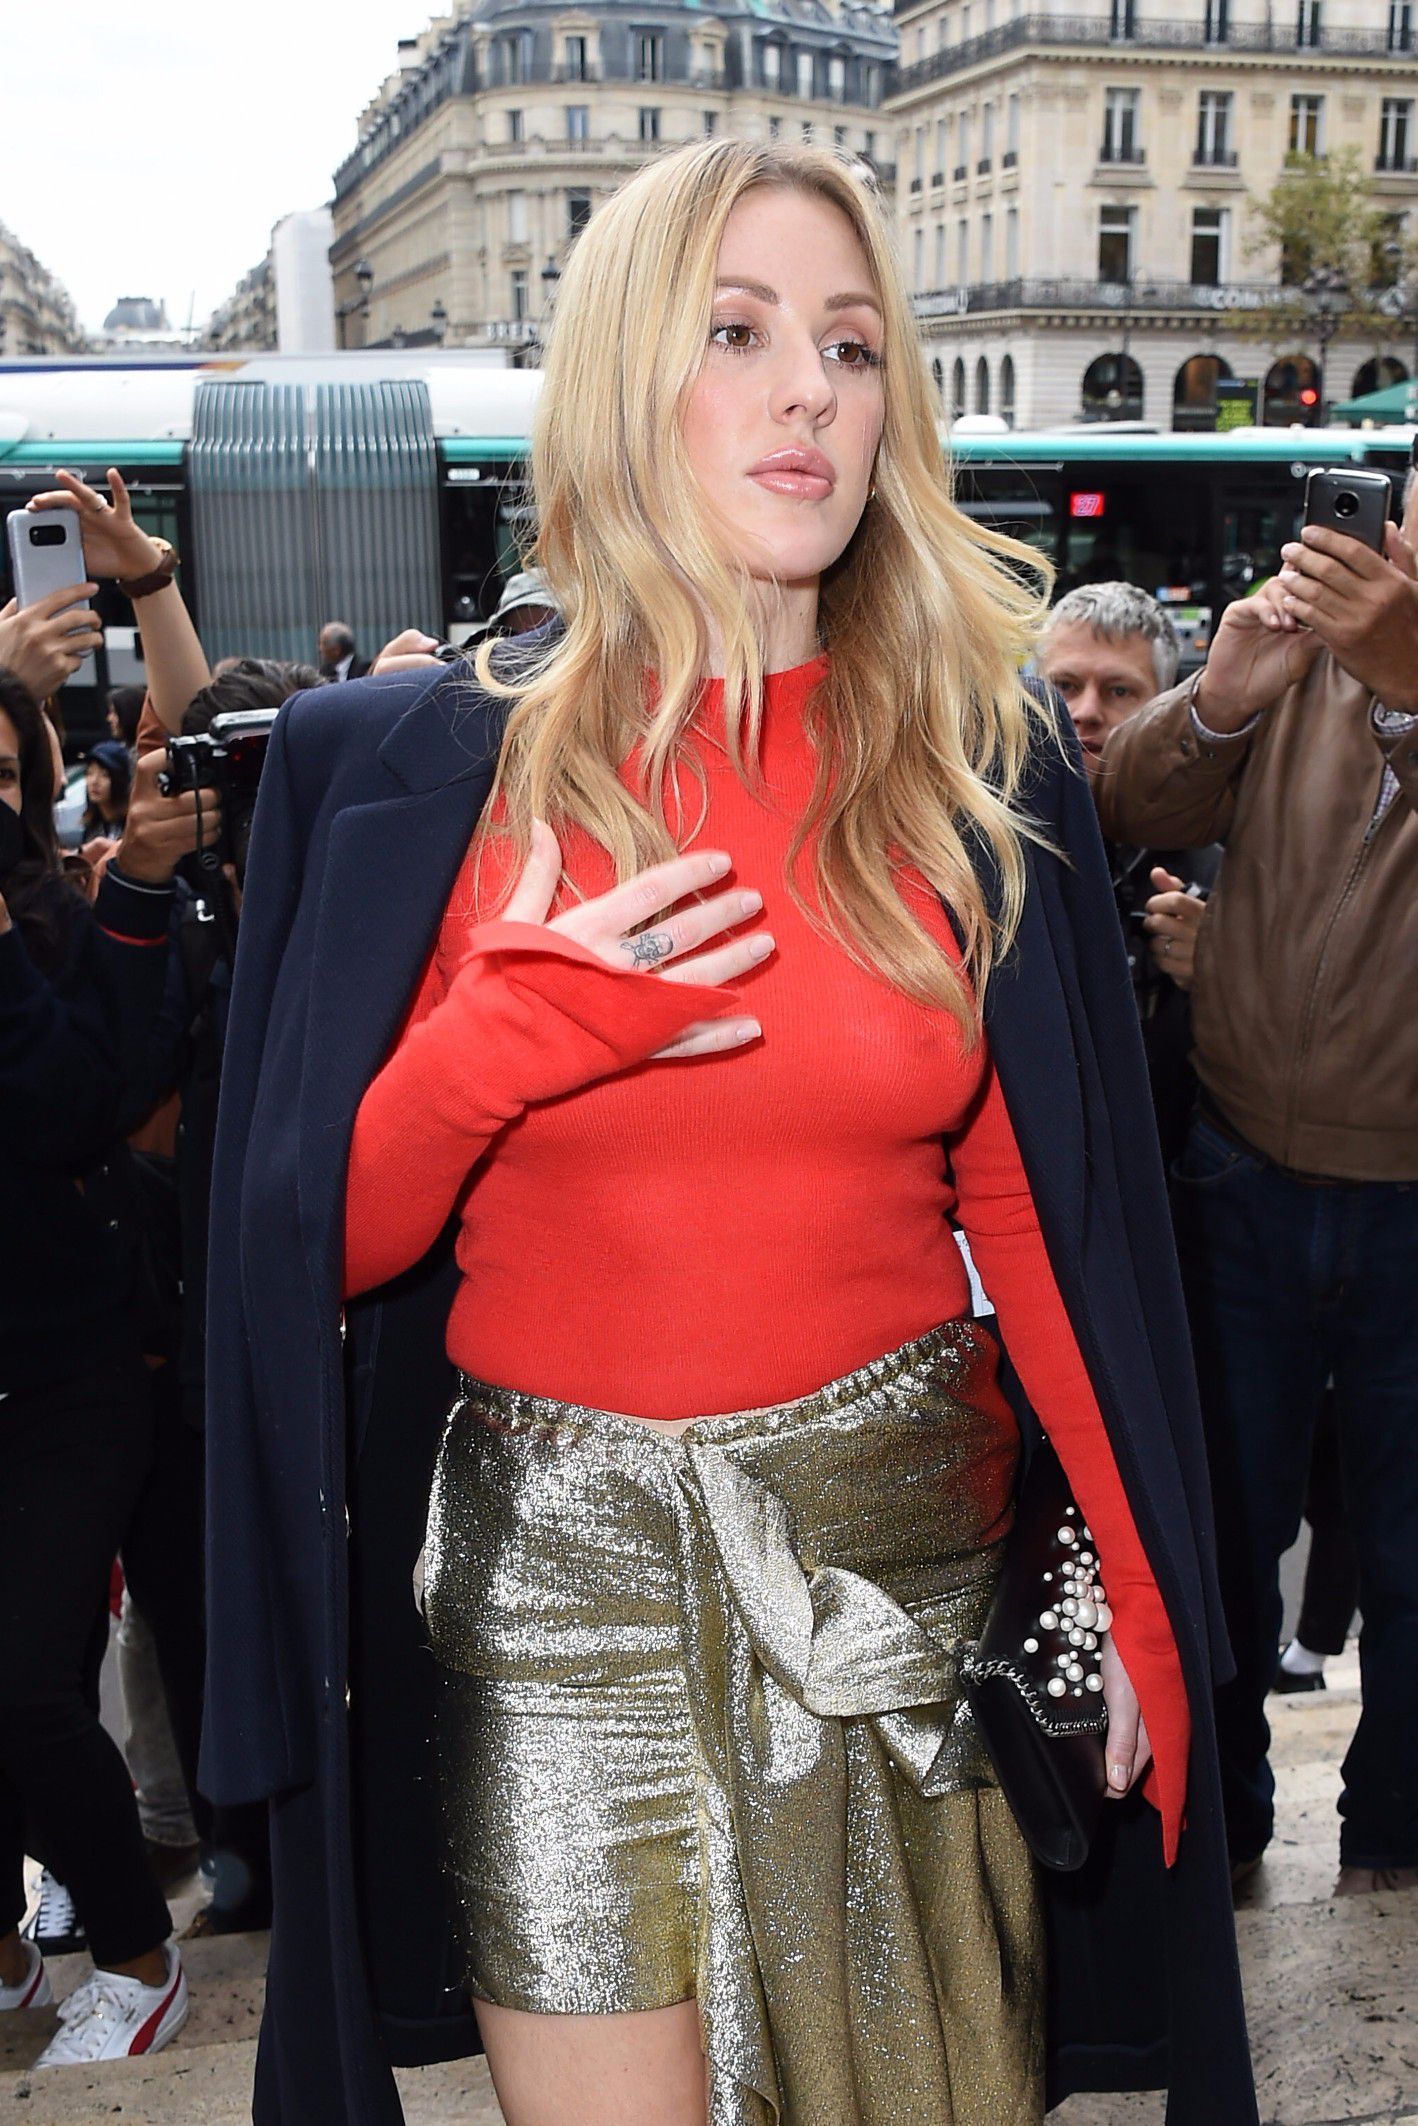 ellie-goulding-braless-in-see-thru-top-at-a-fashion-show-in-paris-4718